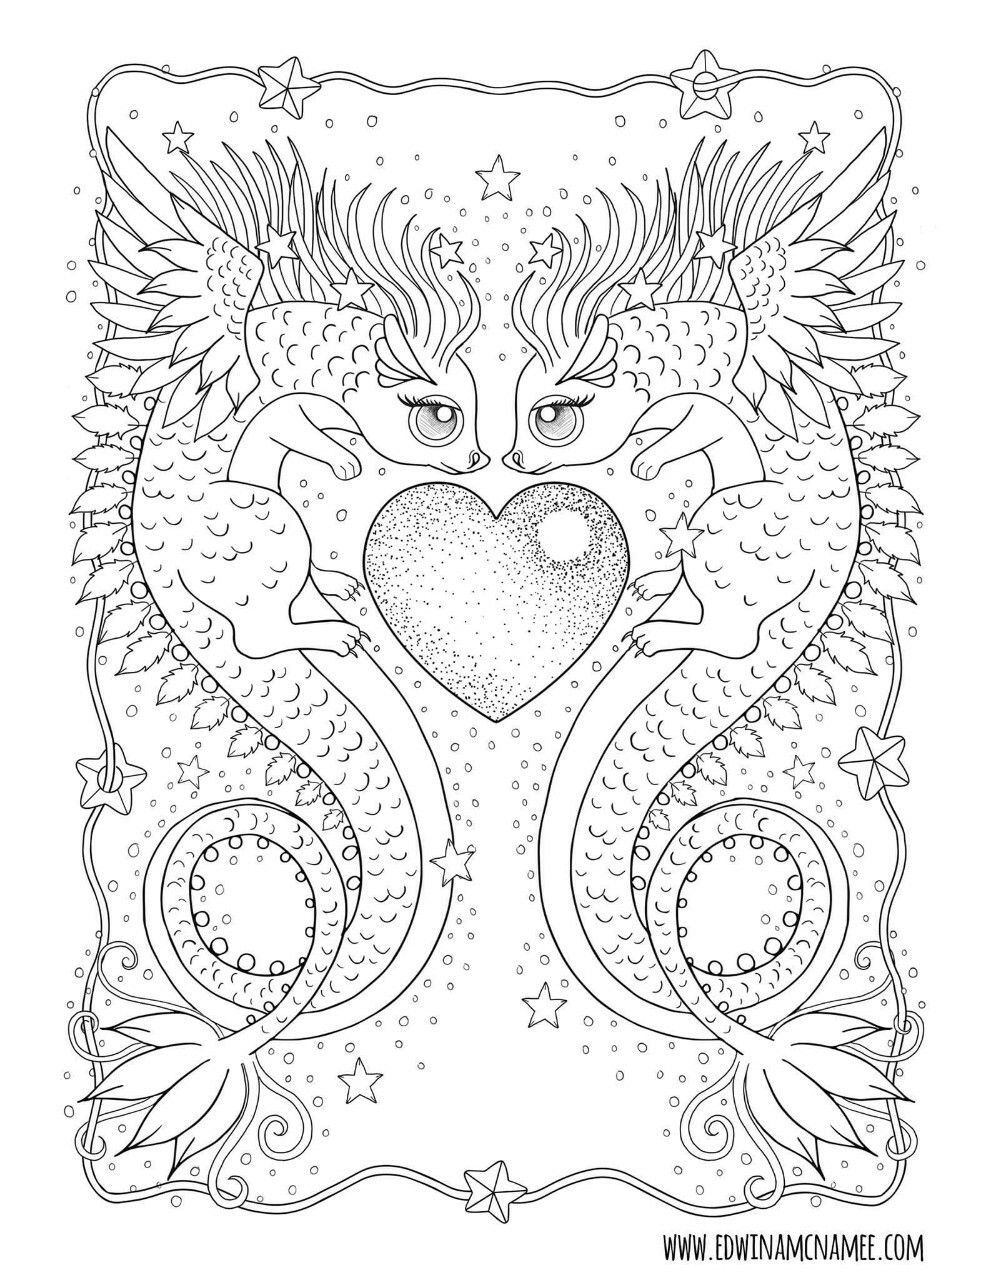 Pin by Vivian M on VM,s Daragon Galleria  Cute coloring pages